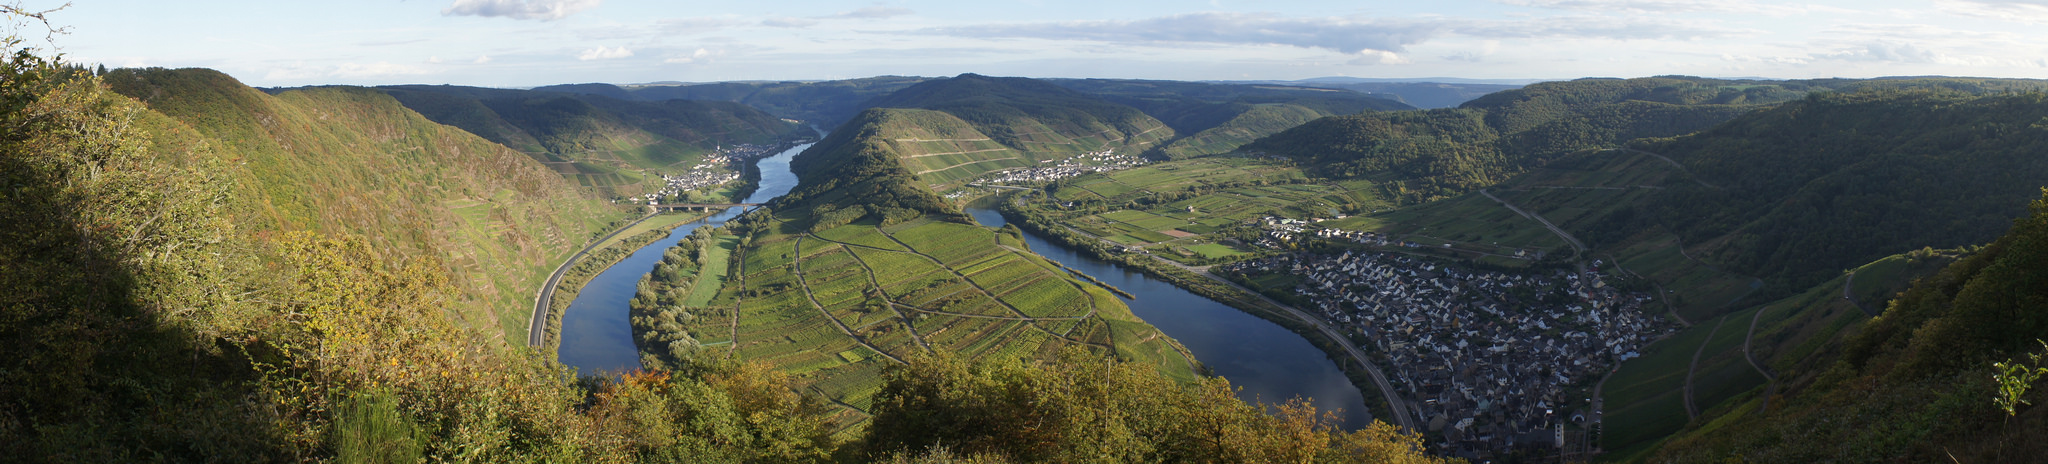 The view over Bremm in the Mosel.  You can see Calmont vineyard (the steepest vineyard in Europe) is on the left side of the image.